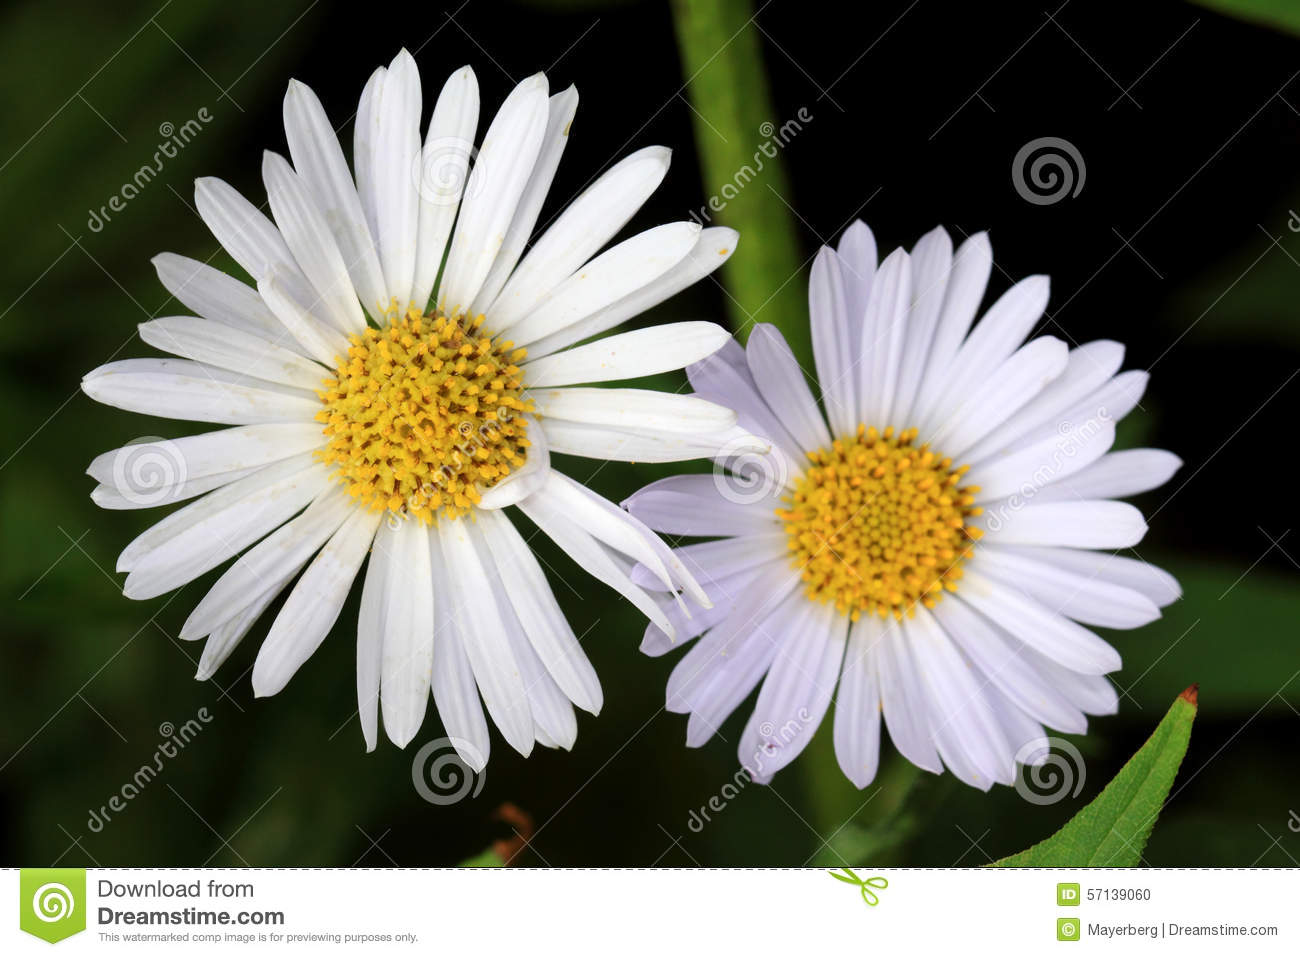 white aster flowers stock photo  image, Beautiful flower